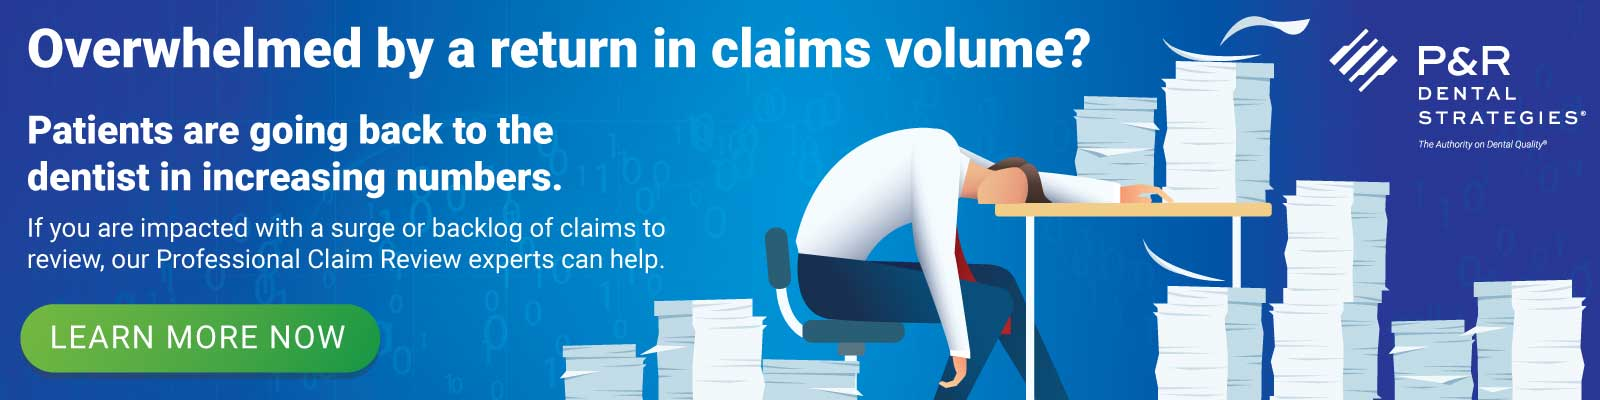 Overwhelmed by a return in claims volume? If you are impacted with a surge or backlog of claims to review, our Professional Claim Review experts can help.